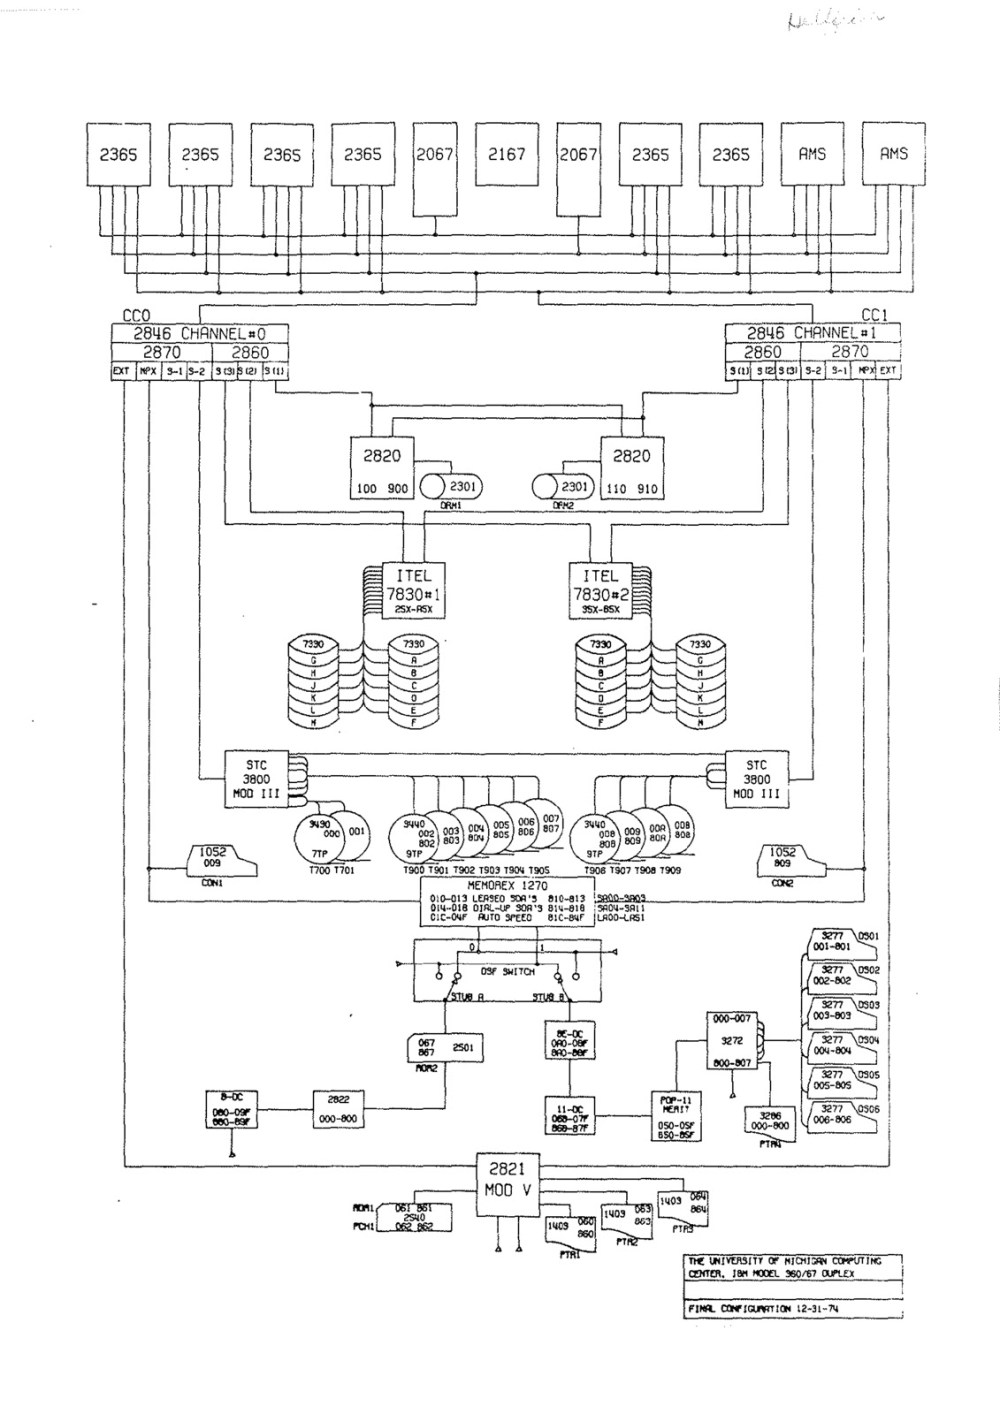 medium resolution of hardware configuration diagram for the ibm s 360 67 computer at u m in december